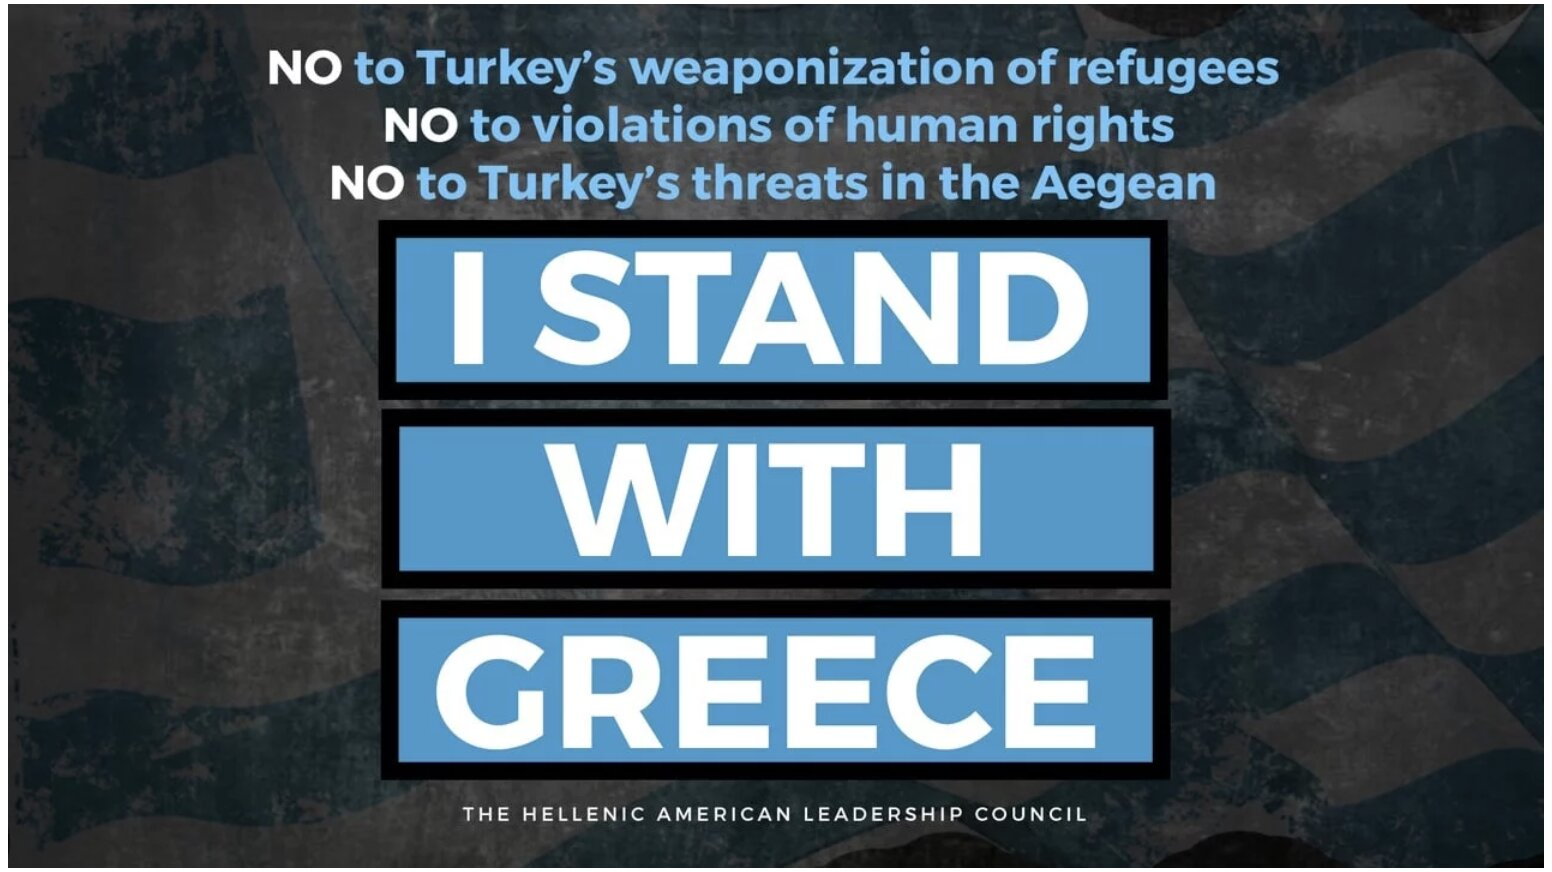 It's time the United States stands with Greece / #IStandWithGreece